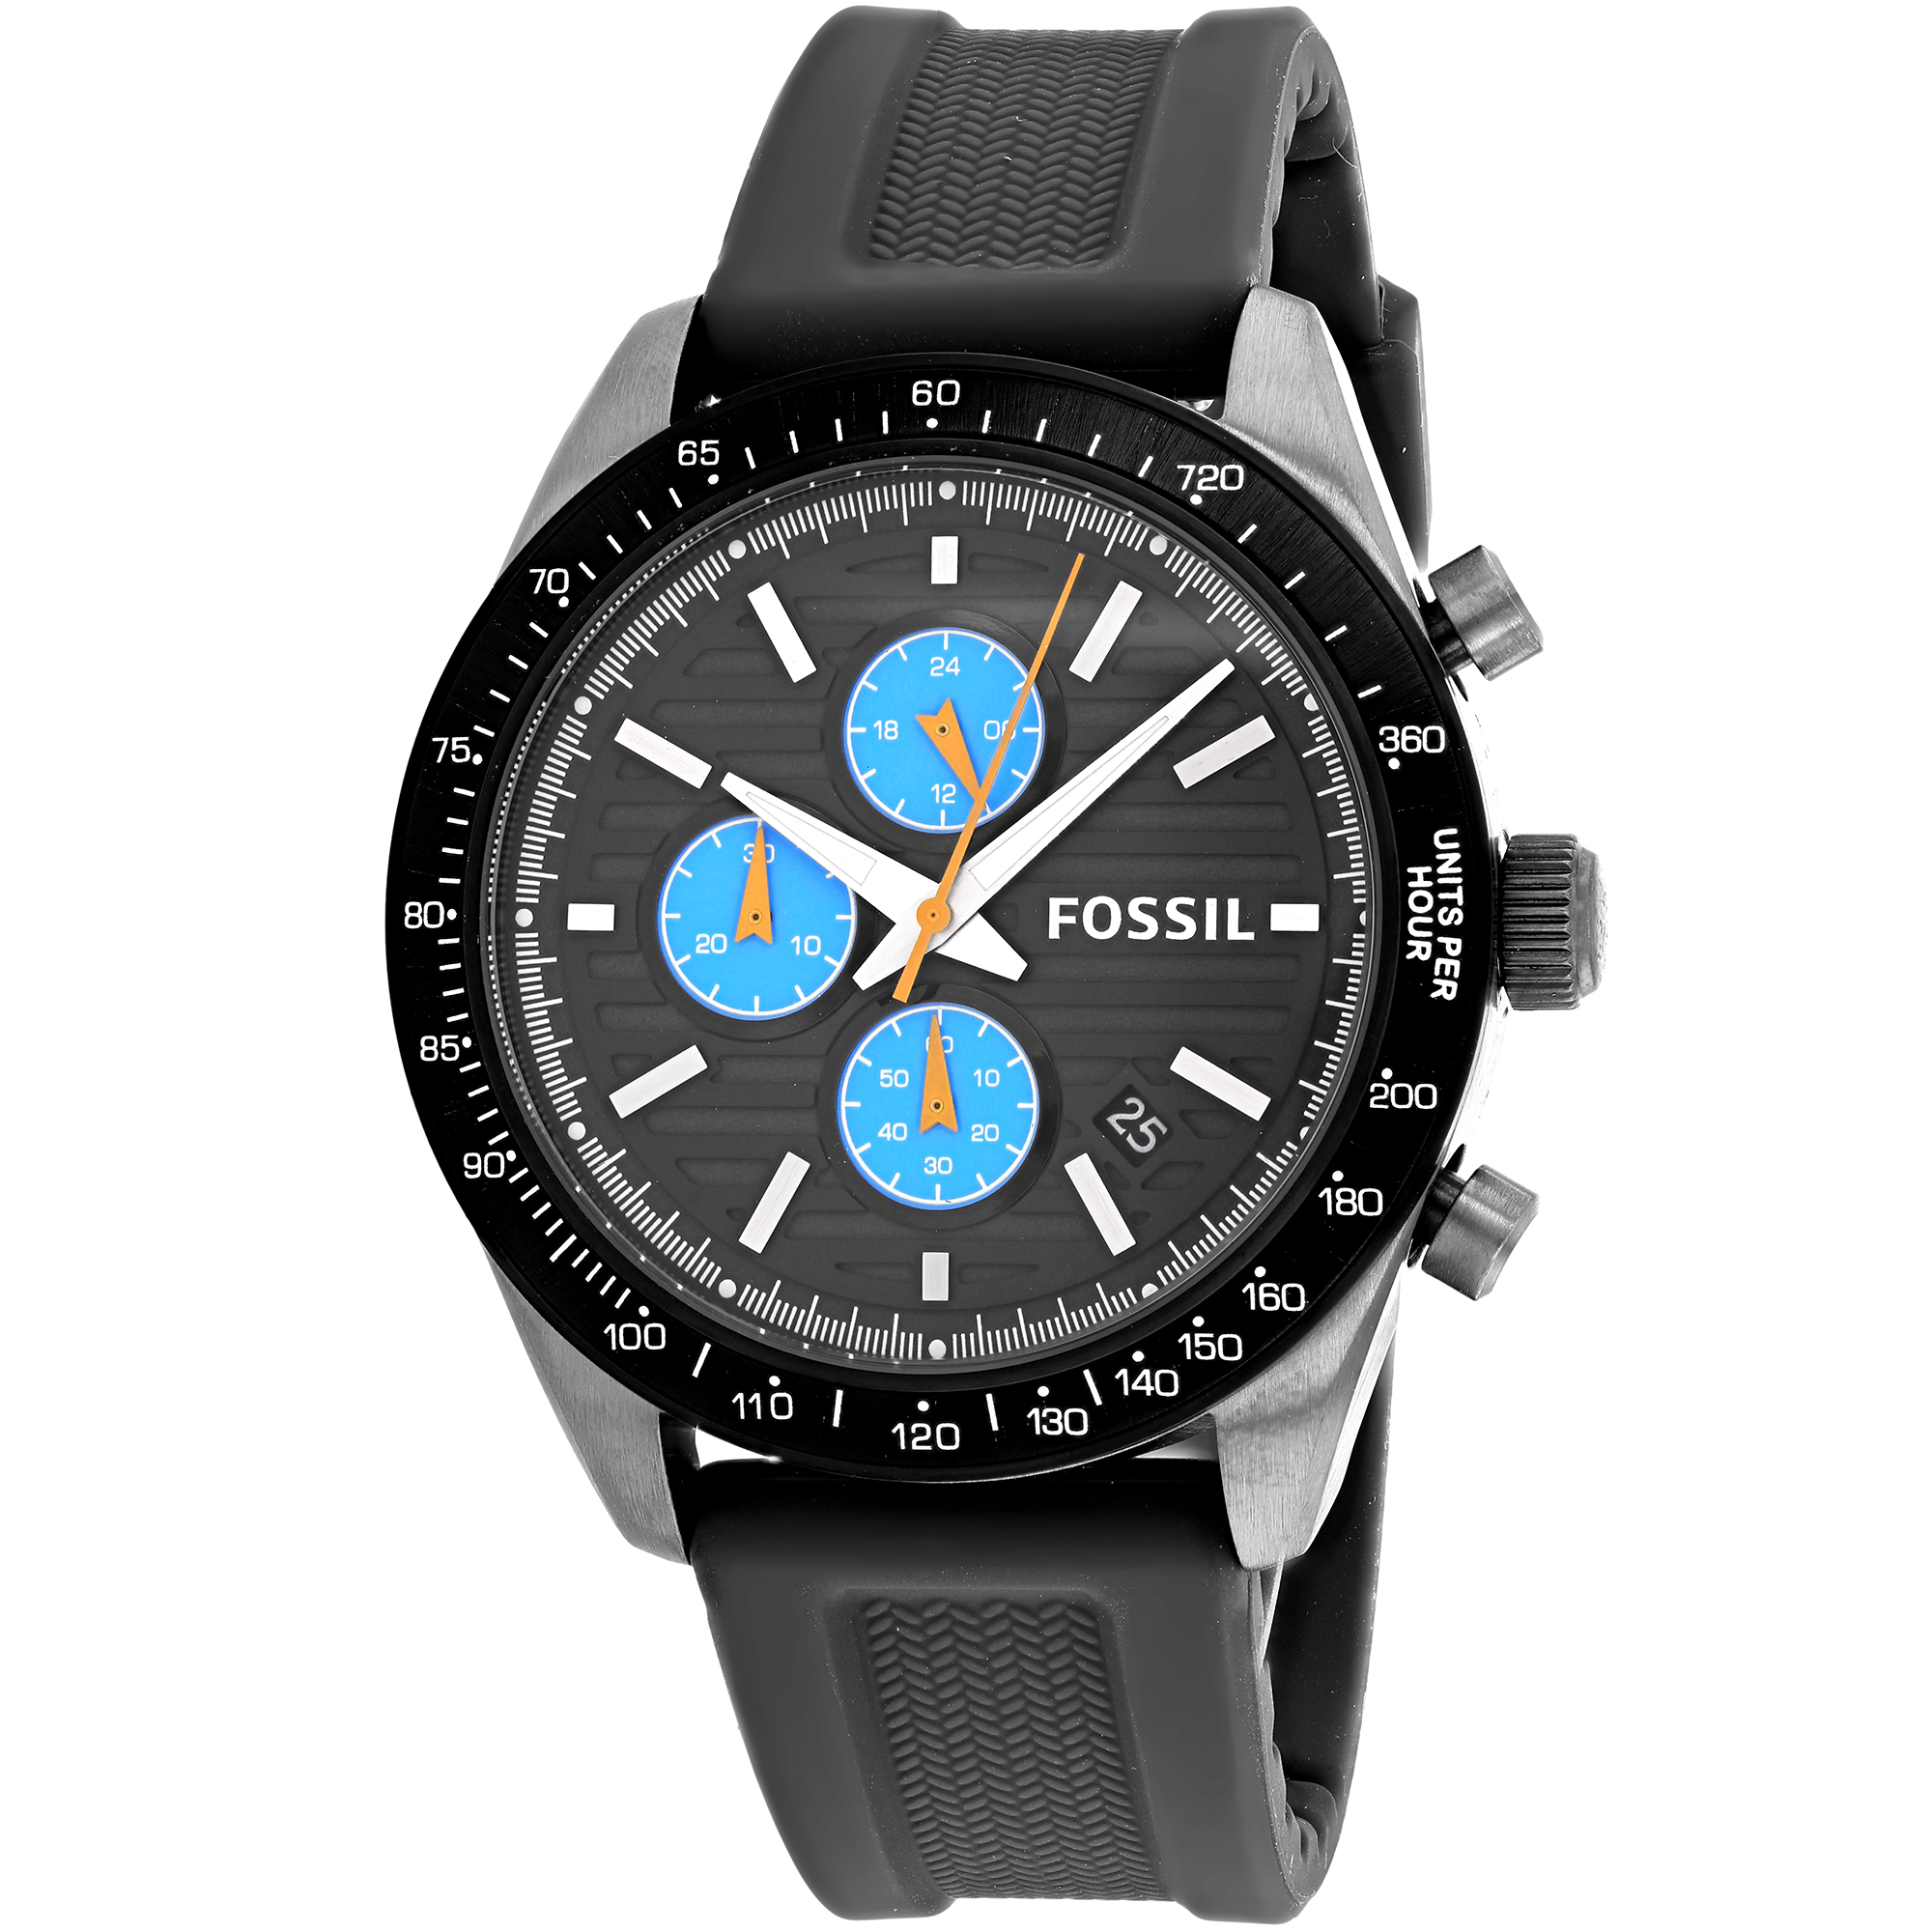 Fossil Sport Watch